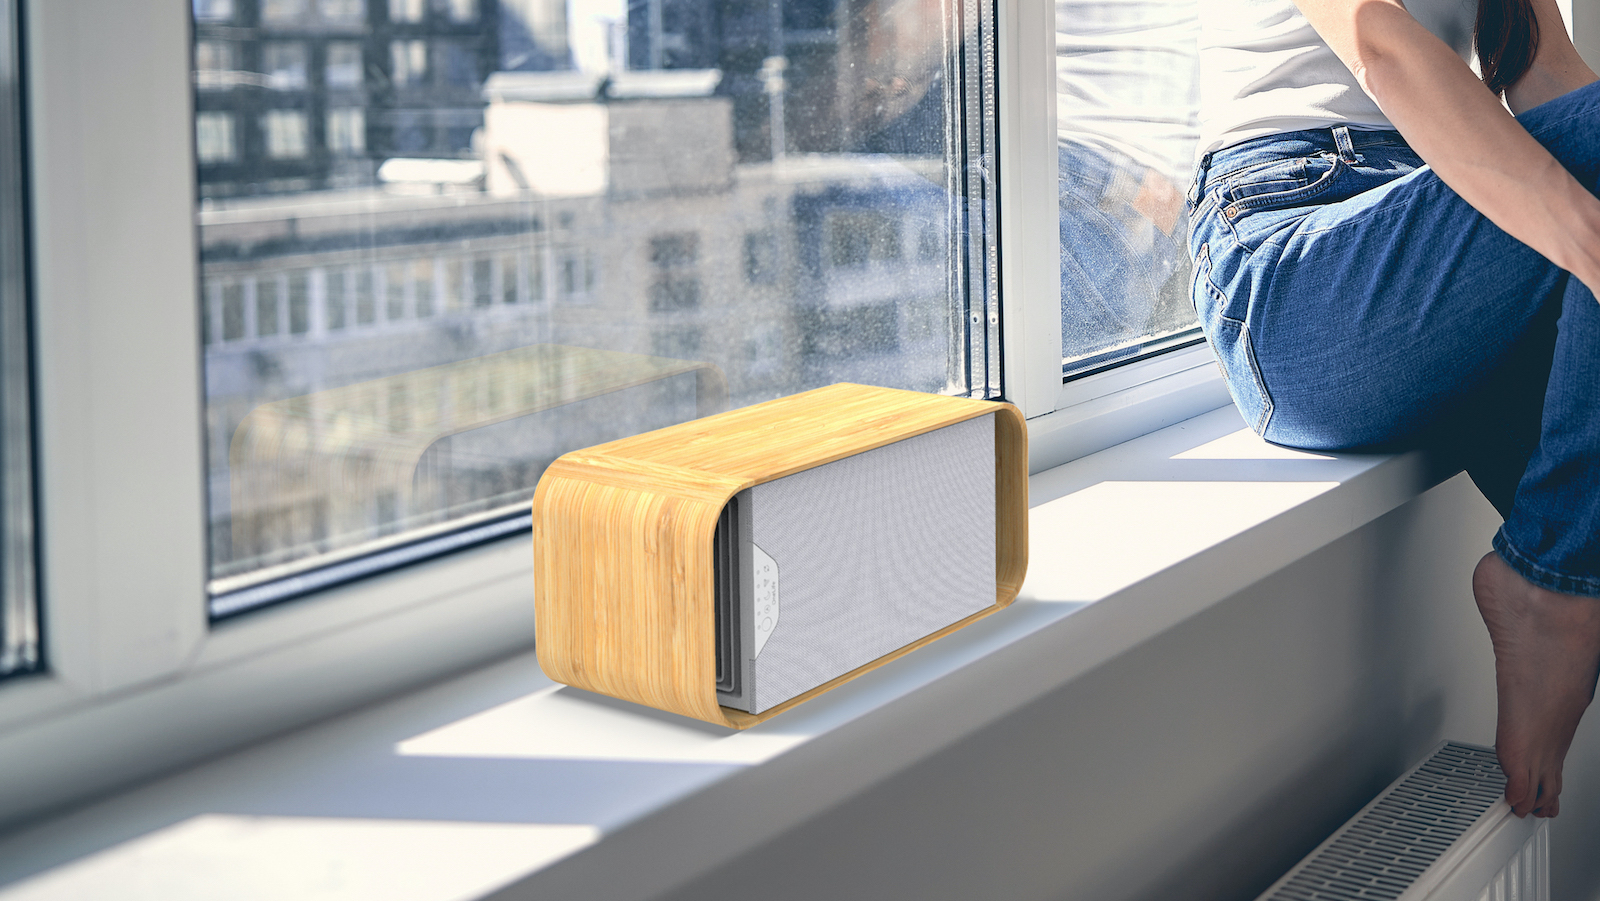 OneLife X energy-efficient air purifier uses a plasma filter for a healthier home